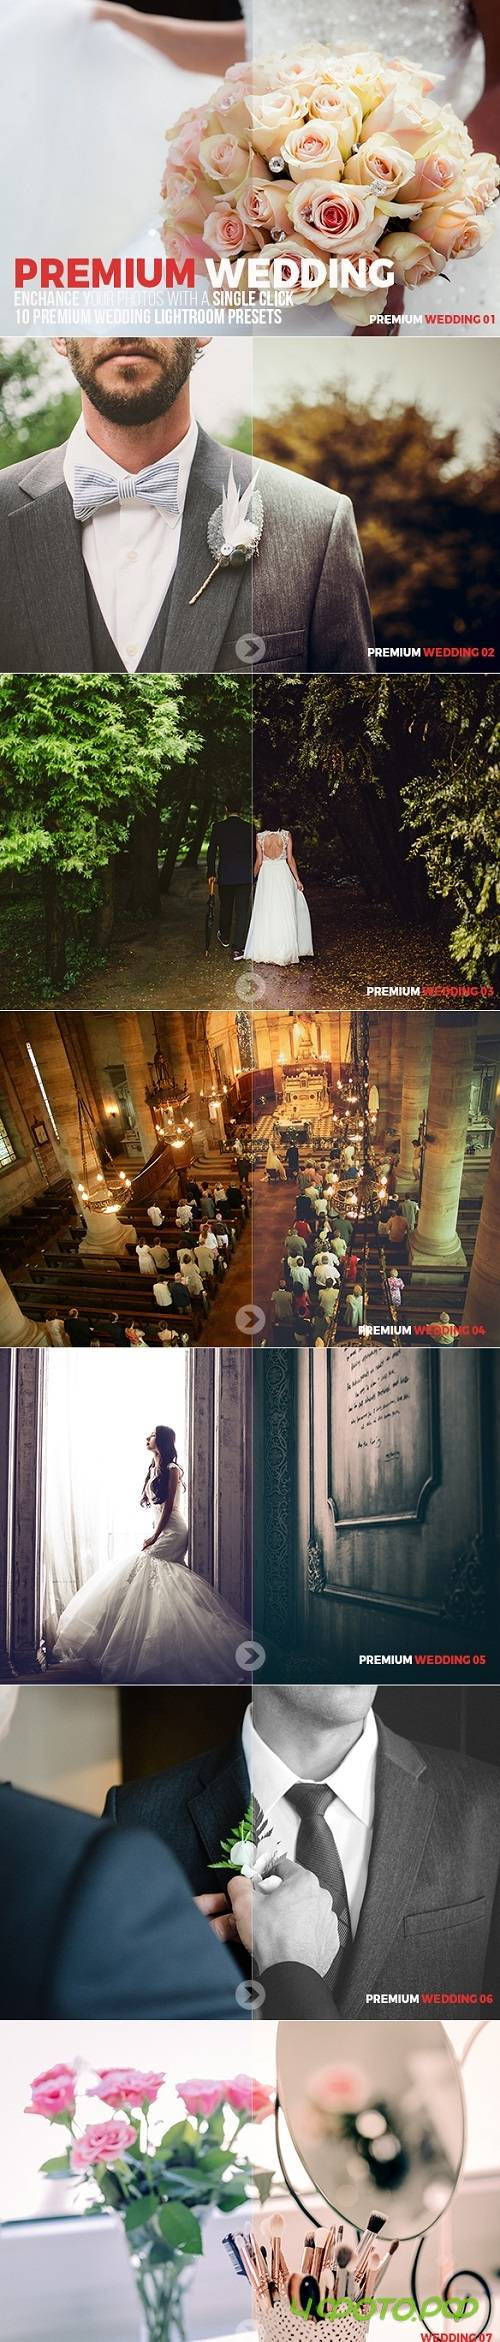 10 Premium Wedding Lightroom Presets 20599287